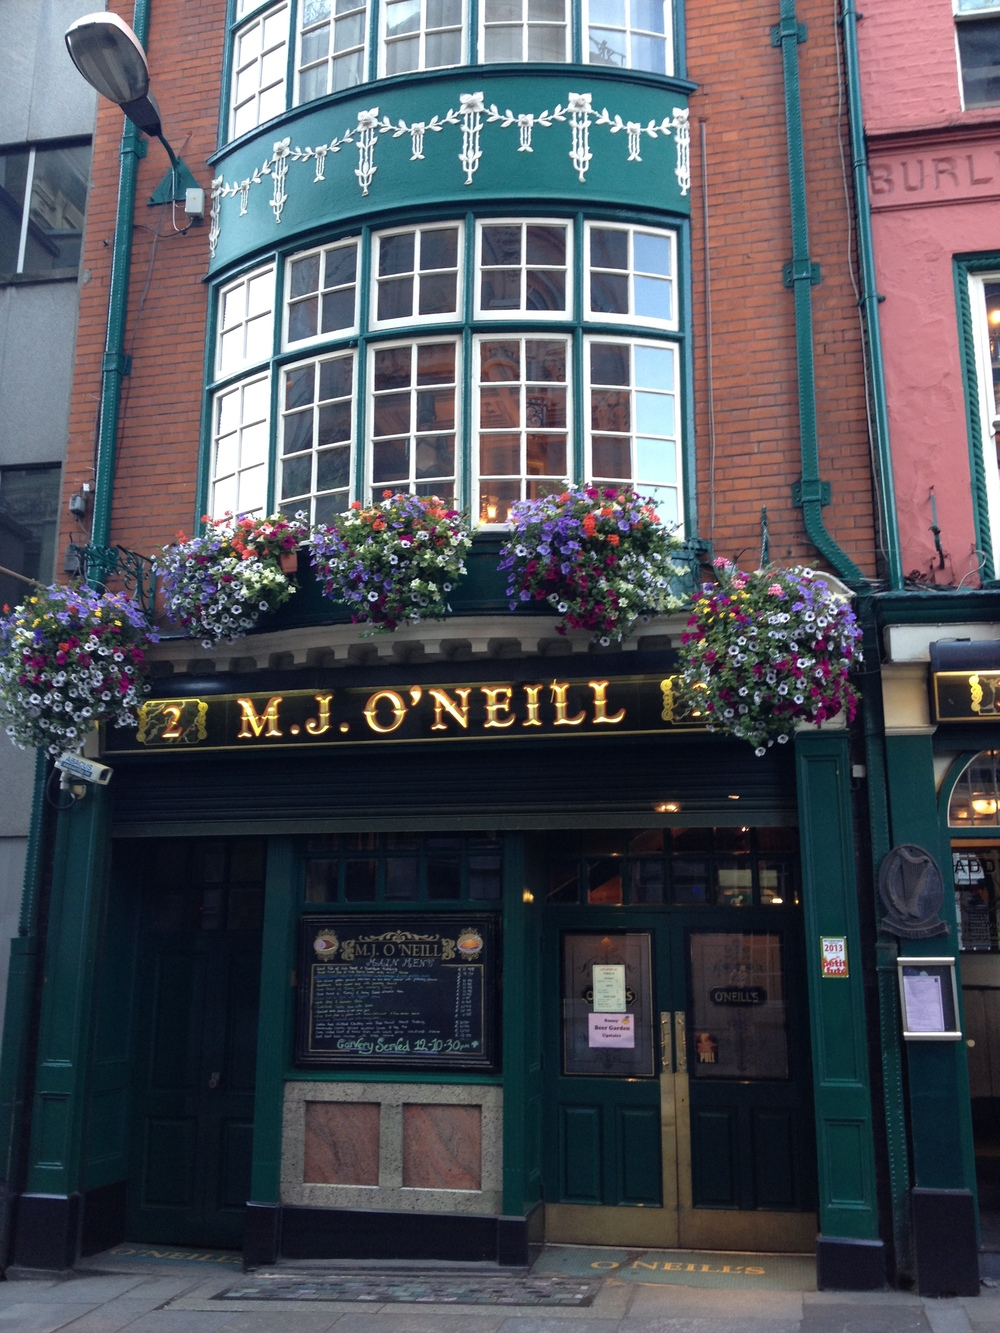 M.J. O'Neill's (Dublin, Ireland)    M.J. O'Neill's is a restaurant and pub located in central Dublin. It was a favorite haunt of famed Irish drinkers/writers James Joyce and Oscar Wilde. It's also known for its unique Victorian architecture and décor. The maze of rooms includes several nooks and hidden side-rooms that were meant for women to drink in secret when the Church forbade co-ed pubs.